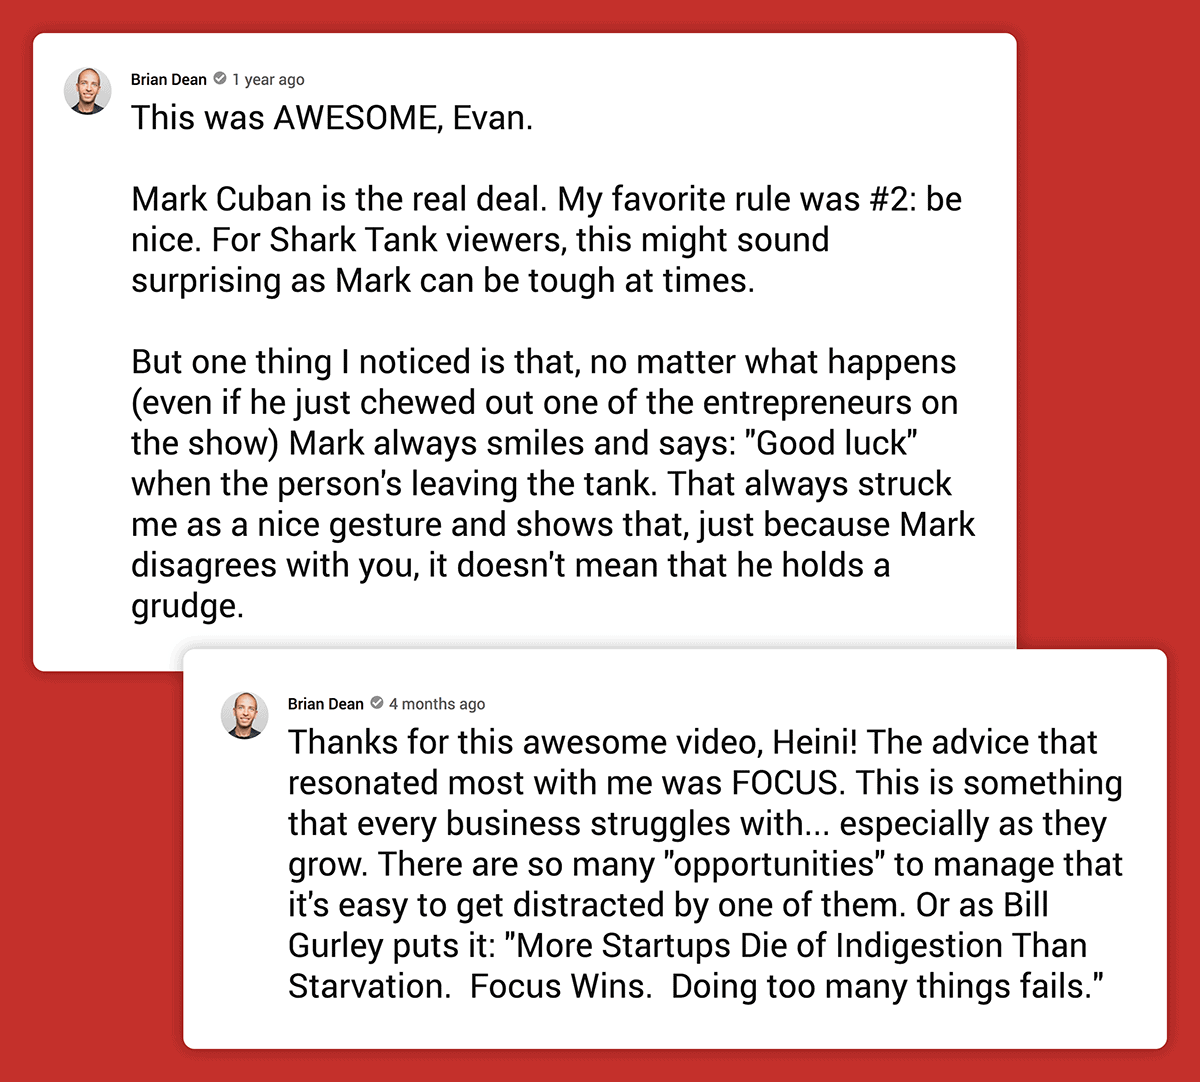 Brian Dean comments on other people's videos